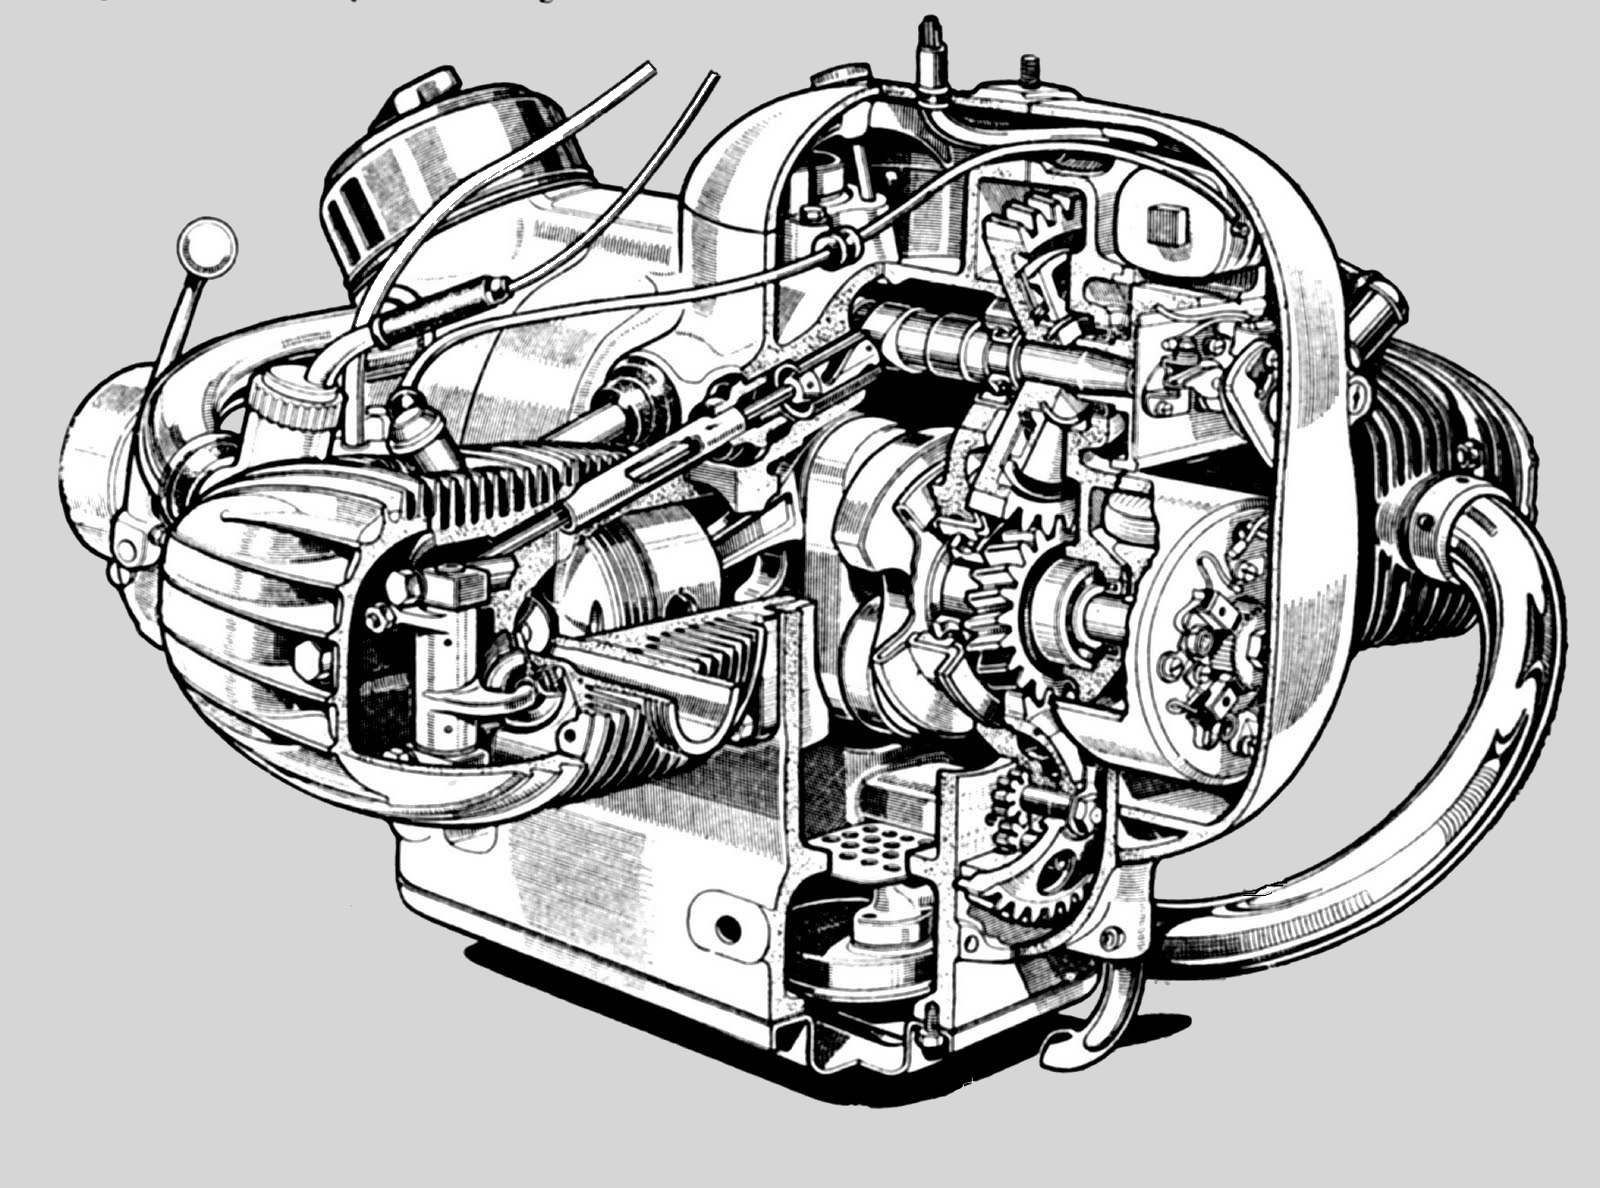 dan s motorcycle how an engine works get learnded pinterest rh pinterest ca BMW Motorcycle Body Parts Diagrams Motorcycle Diagram with Label